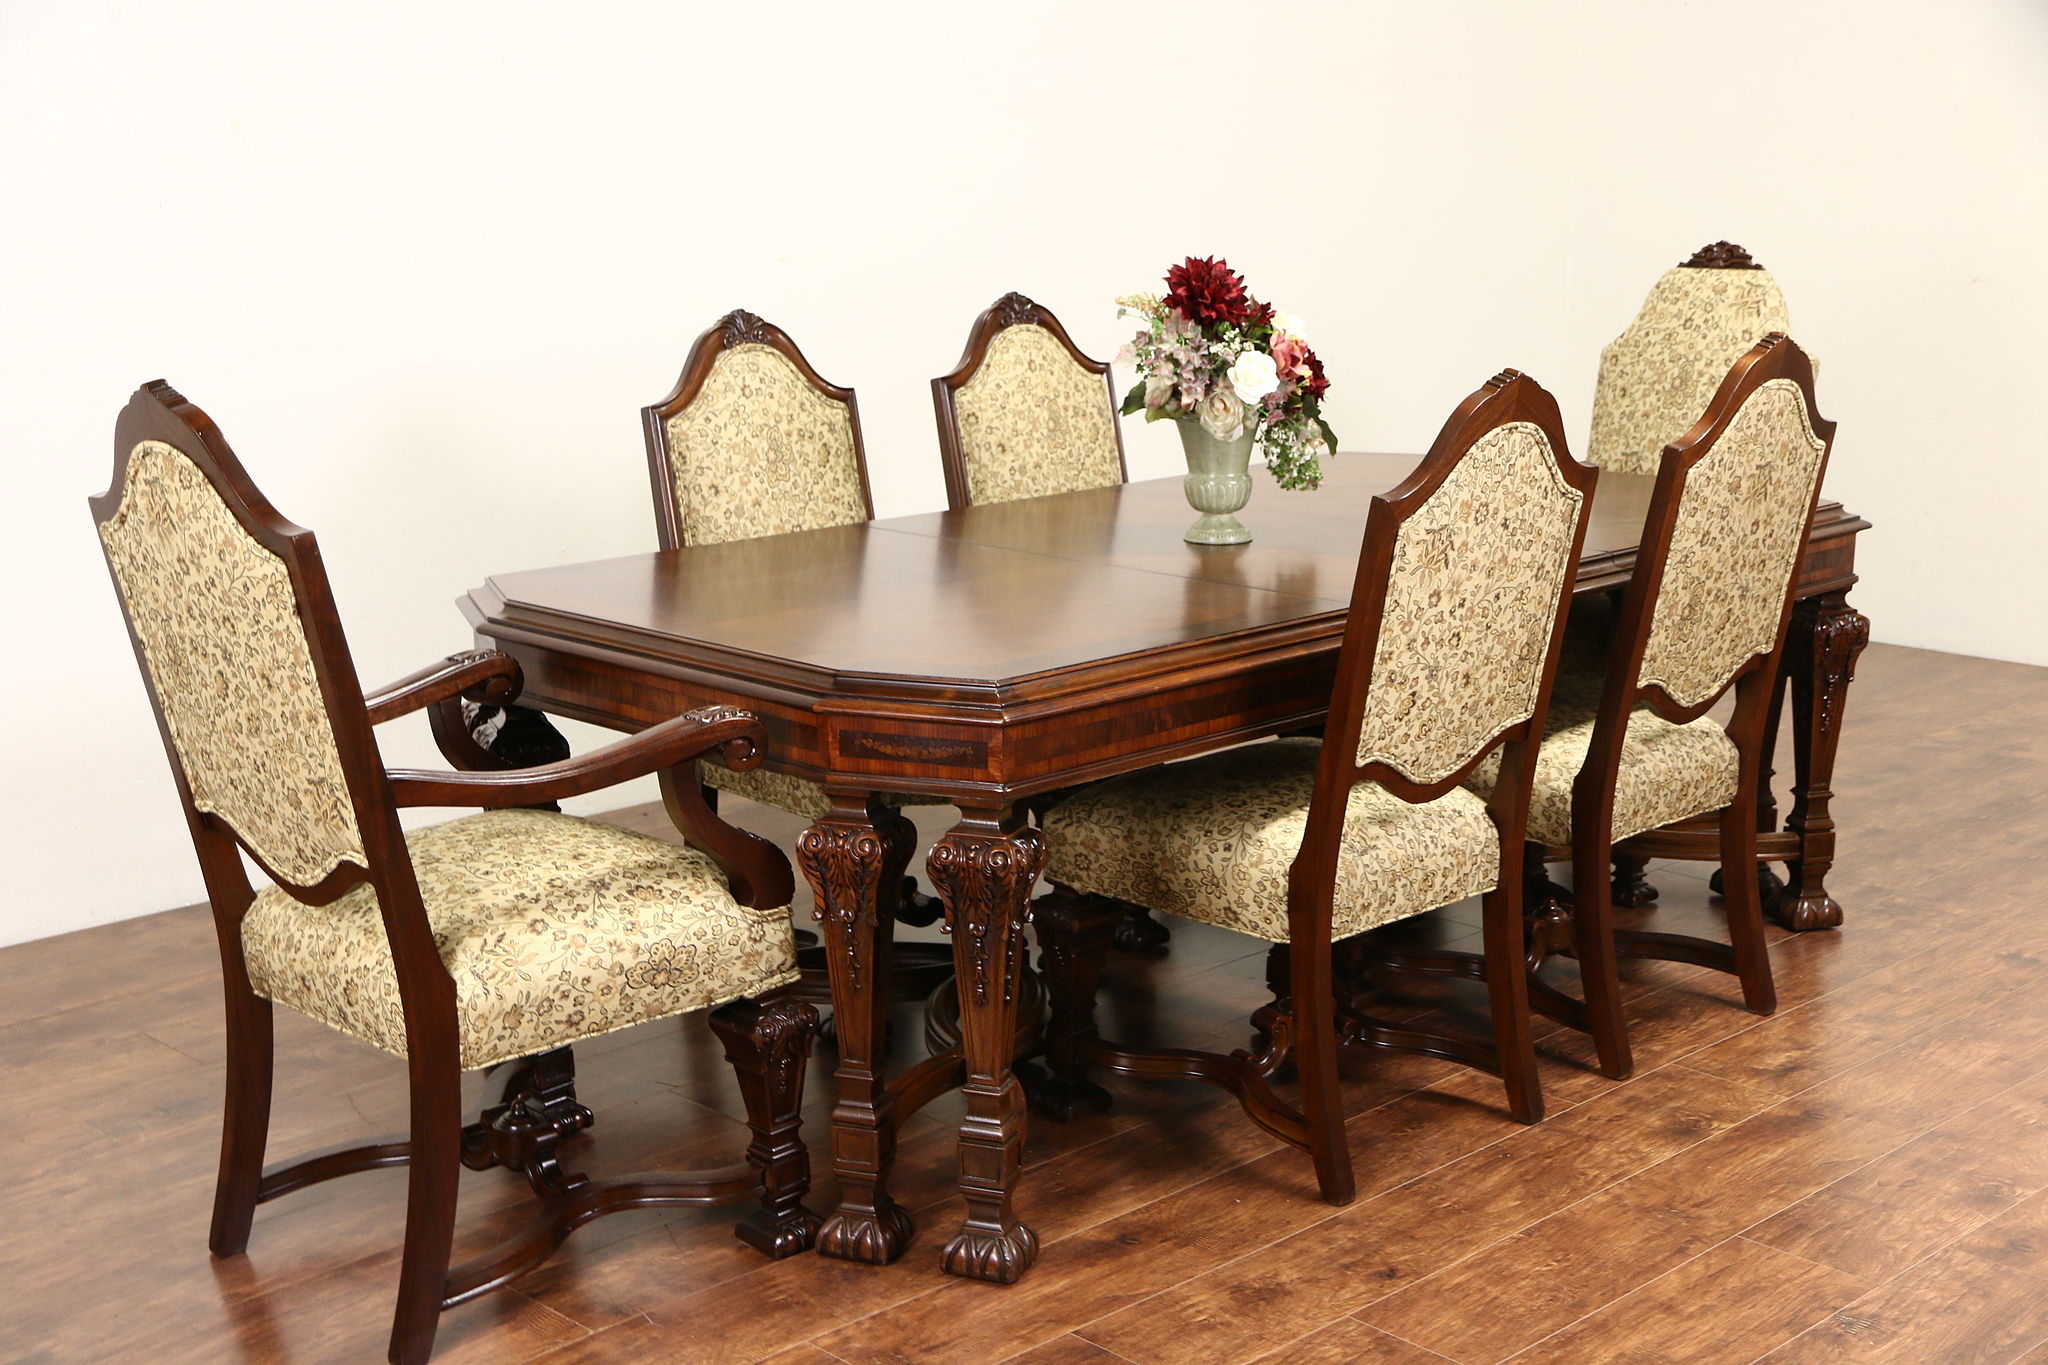 Merveilleux Renaissance Carved 1920 Banded Dining Table Without Chairs, Signed